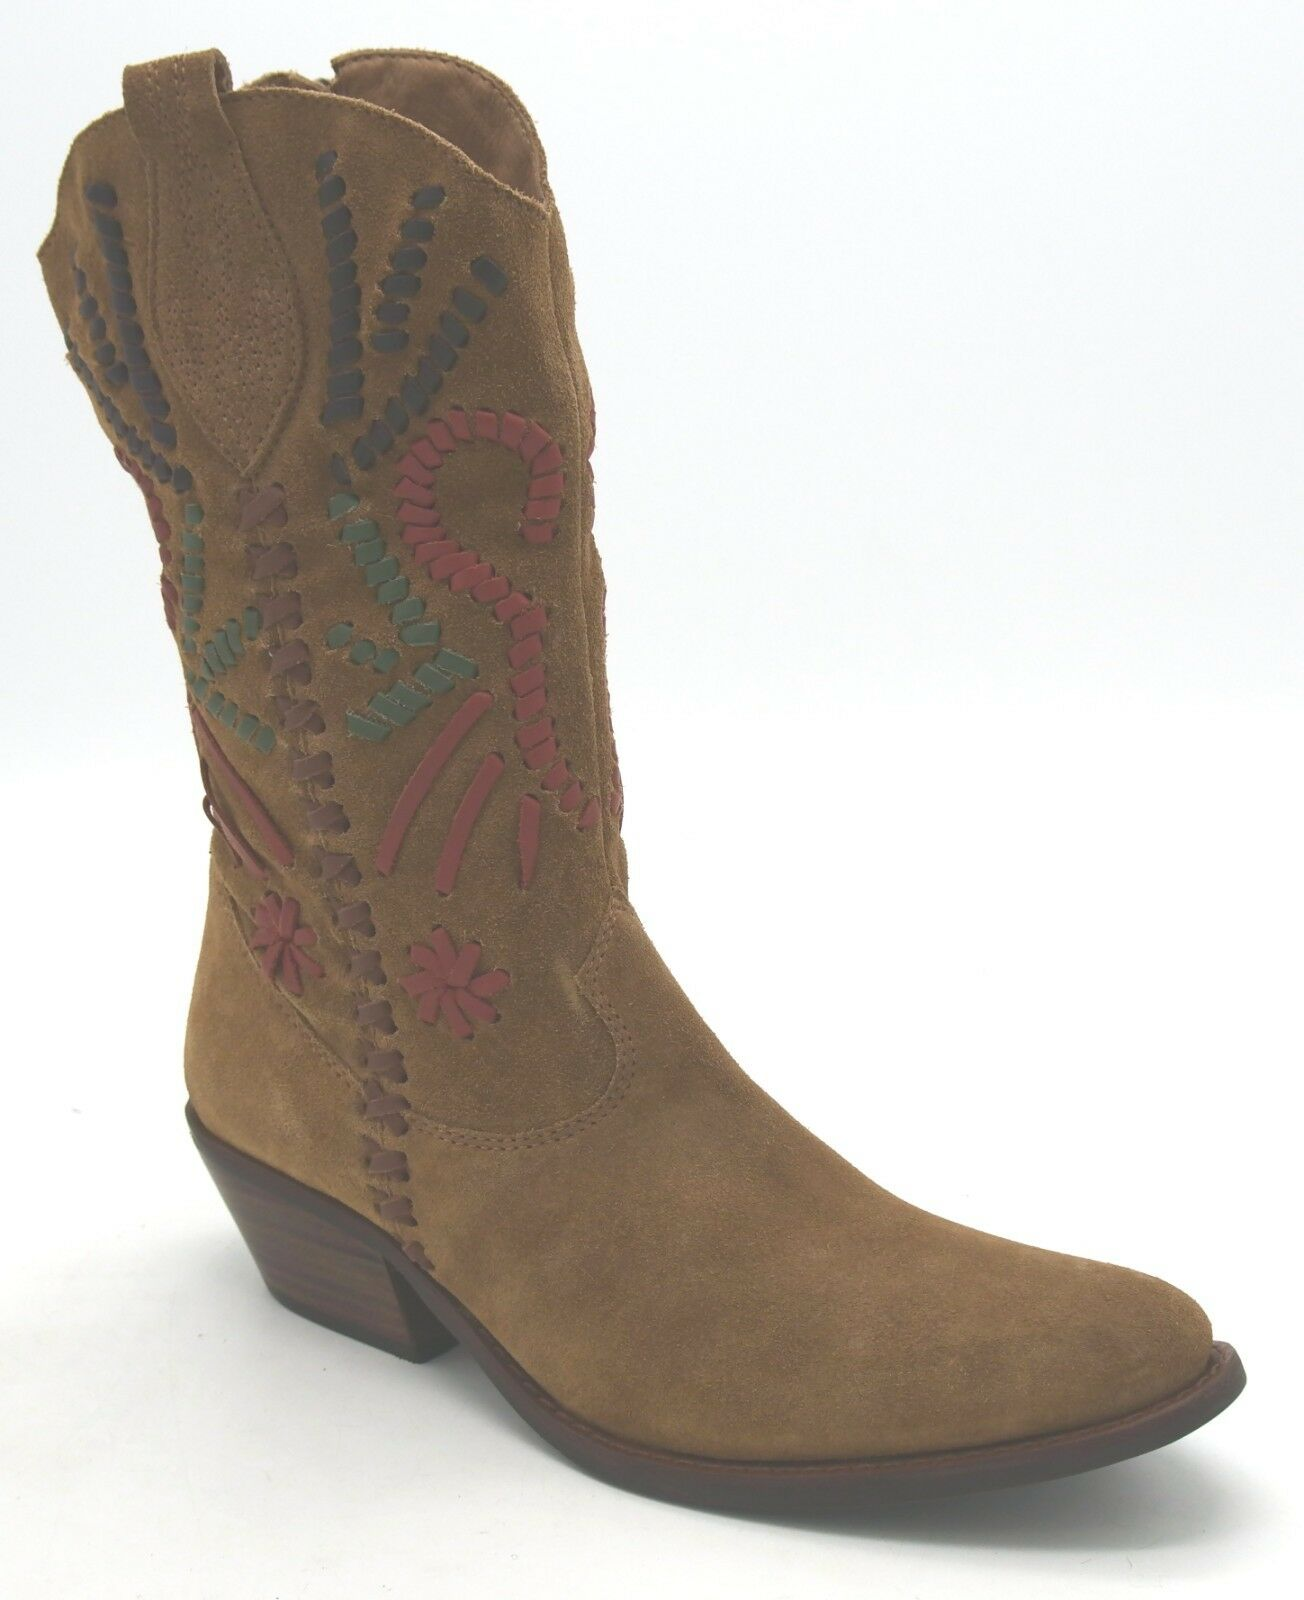 J6959 New Women's Diego Di Lucca Bullwhip Brown Brown Brown Multi color Cowboy Boot 9 M 8c5390